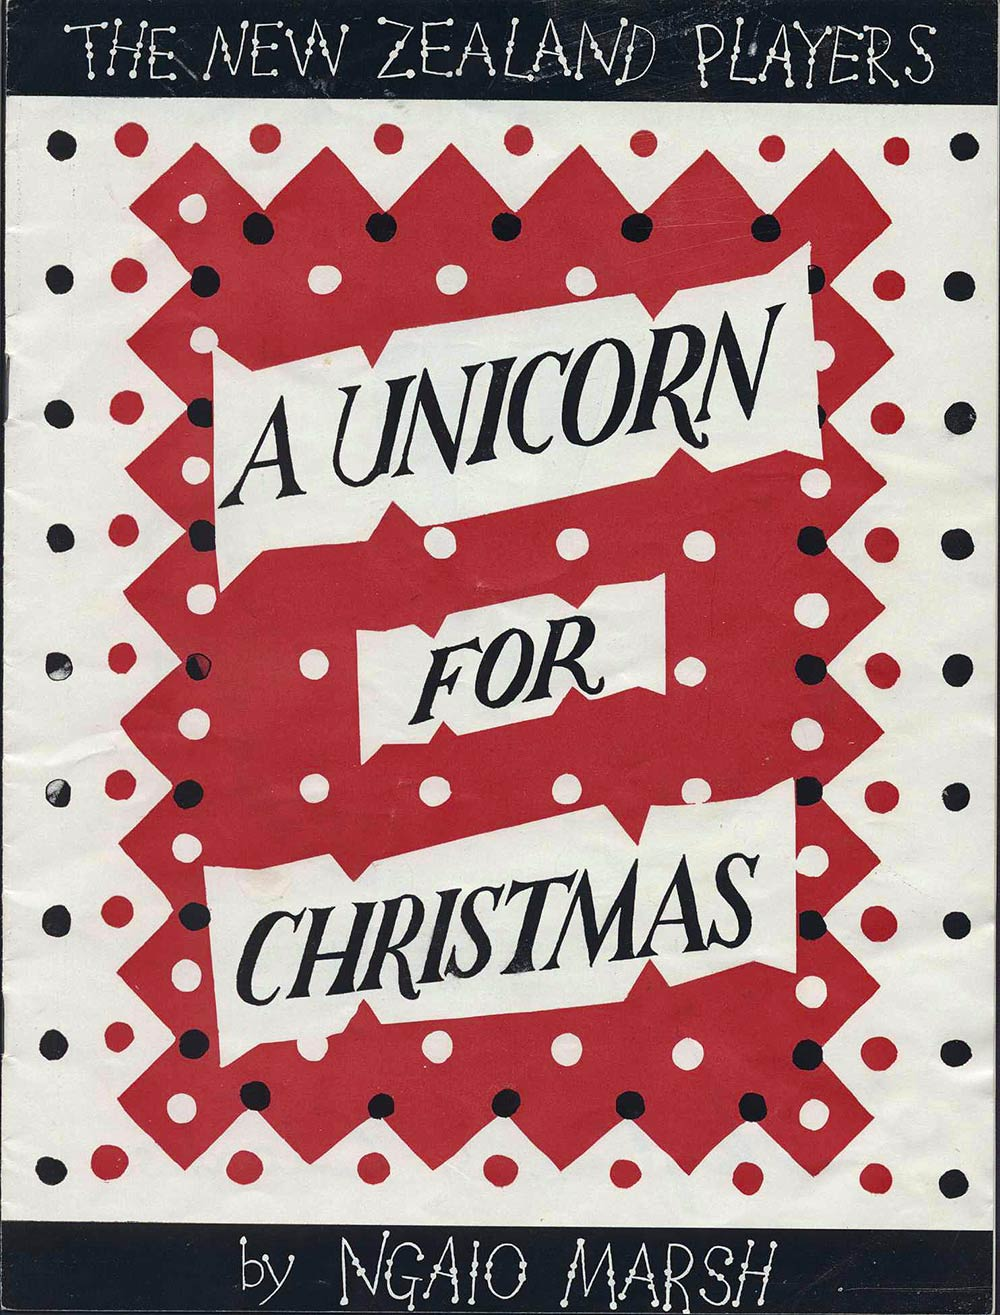 <em>A unicorn for Christmas</em>. Ngaio Marsh. (New Zealand Players). 1955.